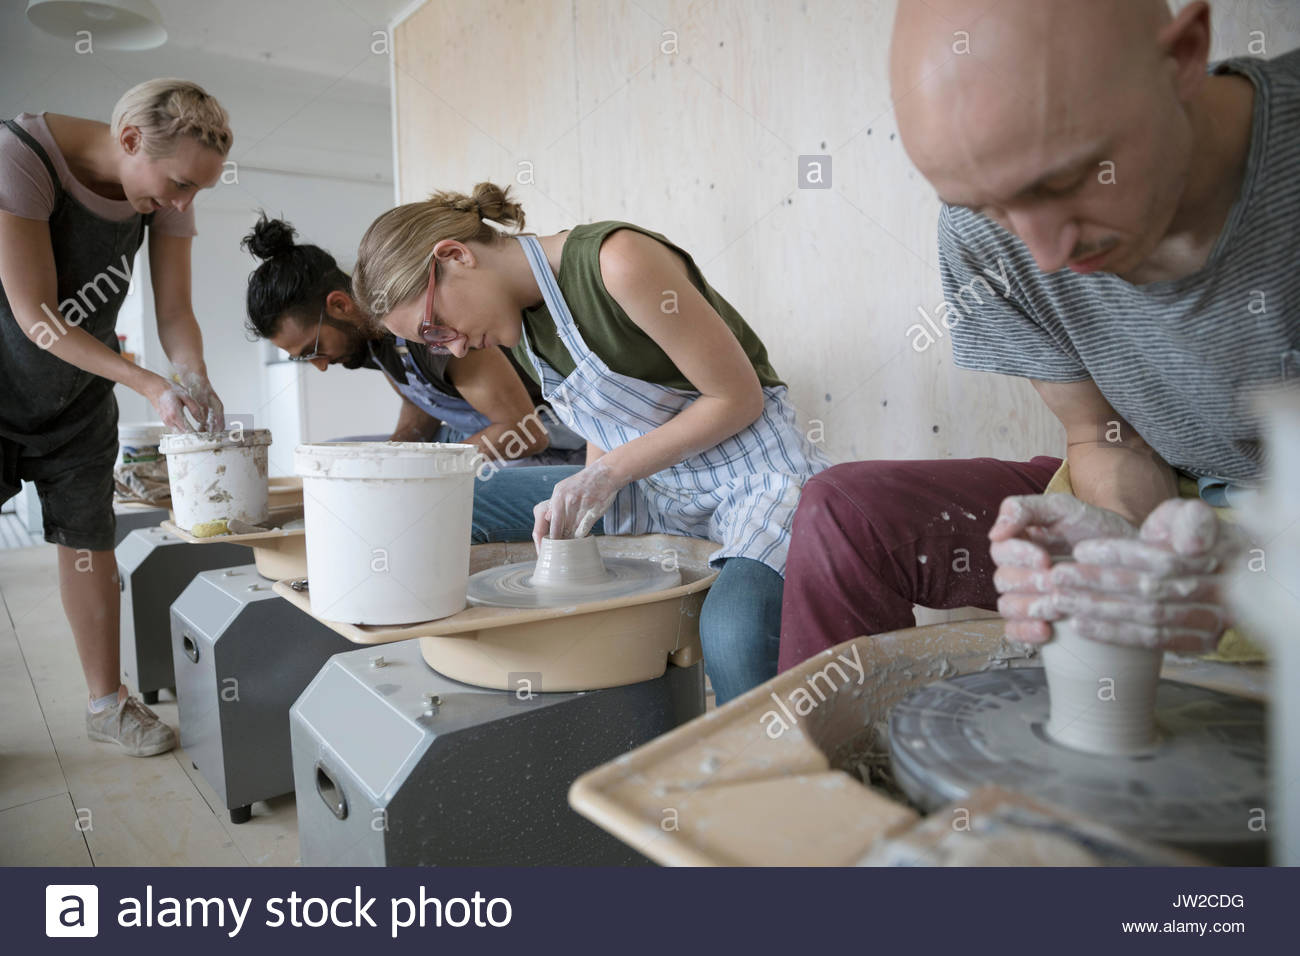 Pottery students learning how to use pottery wheels in art studio - Stock Image